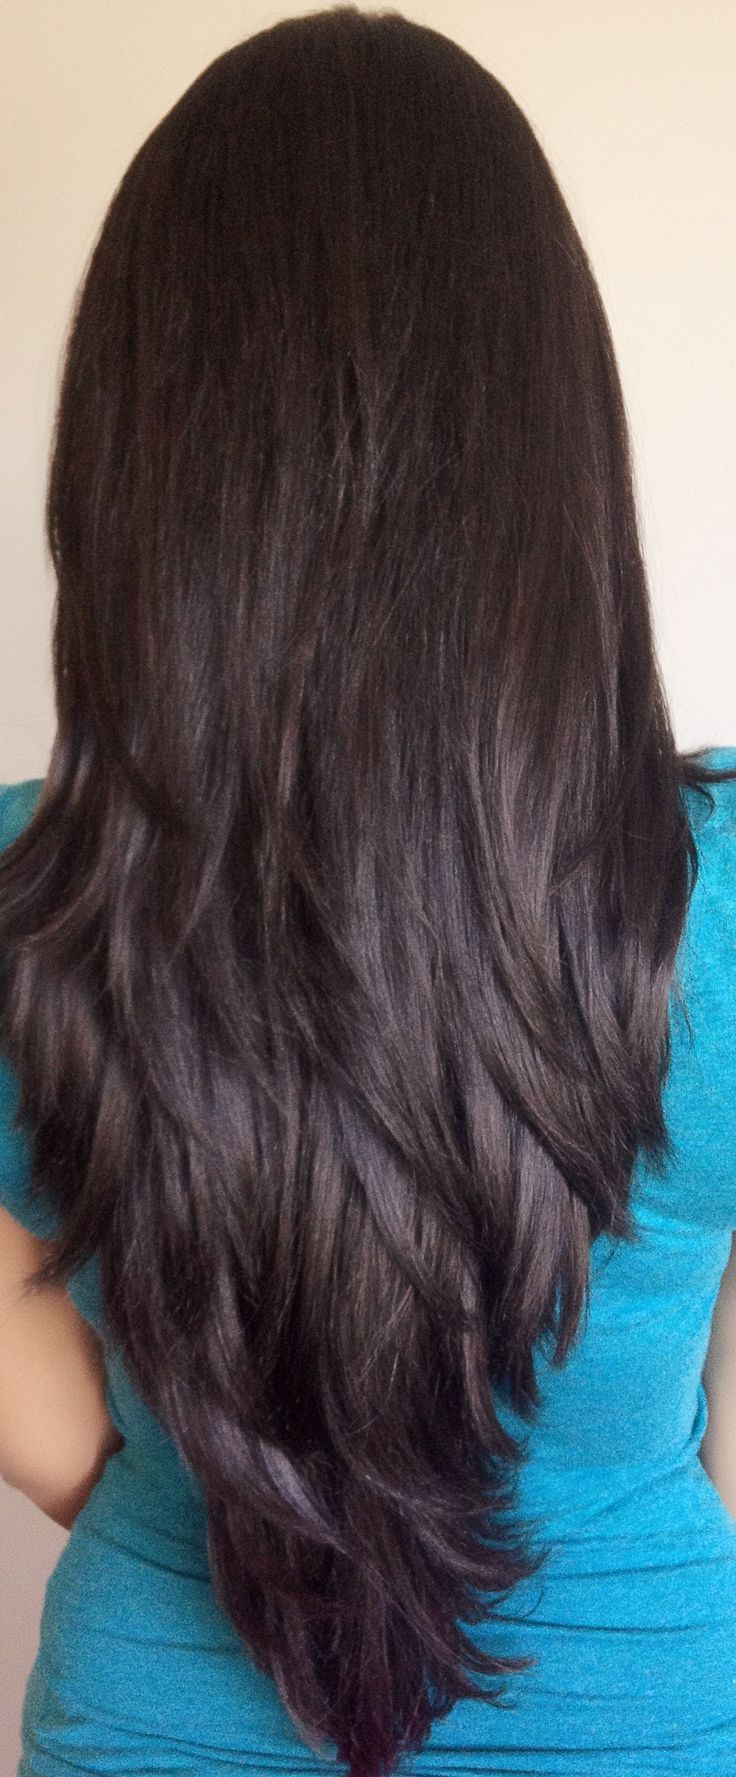 long hair layered style best 25 v layered haircuts ideas on 9088 | 30a14a1043566d05d14ac8fd3cbd7f5e v layers hair styles for long hair with layers